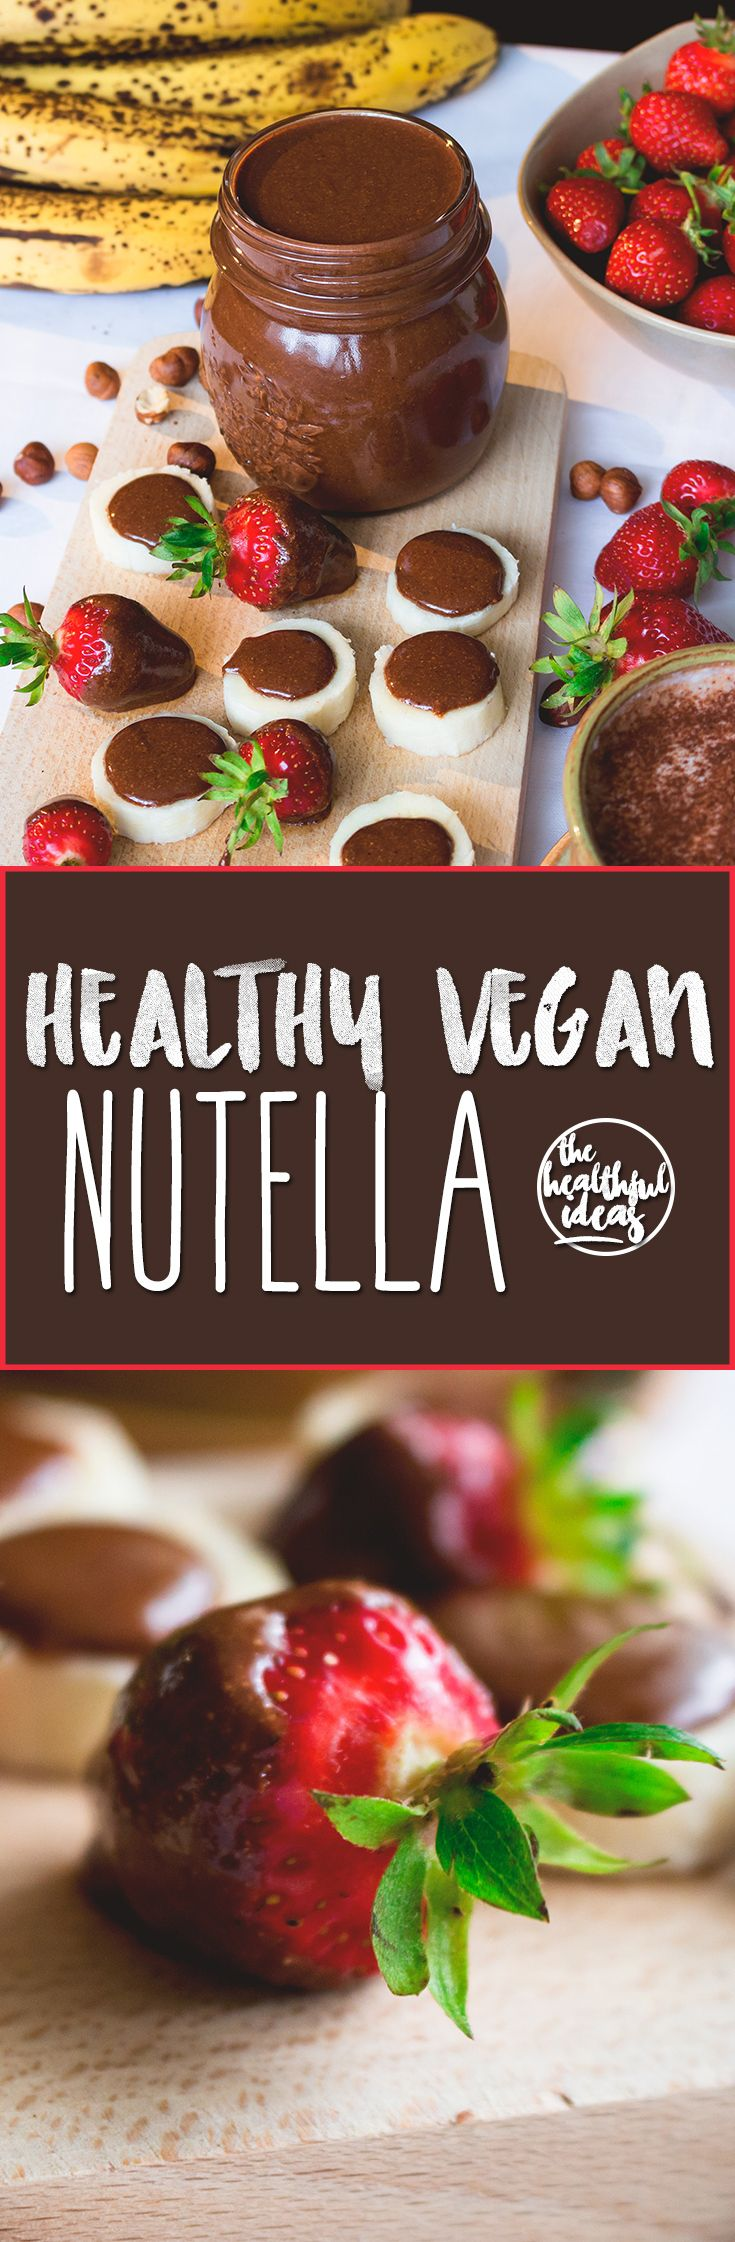 Healthy Nutella - I love this recipe! Only roasted hazelnuts, maple sugar, sea salt, and cacao powder! Really easy to make and super delicious. You'll never eat the store-bought kind again! | thehealthfulideas.com